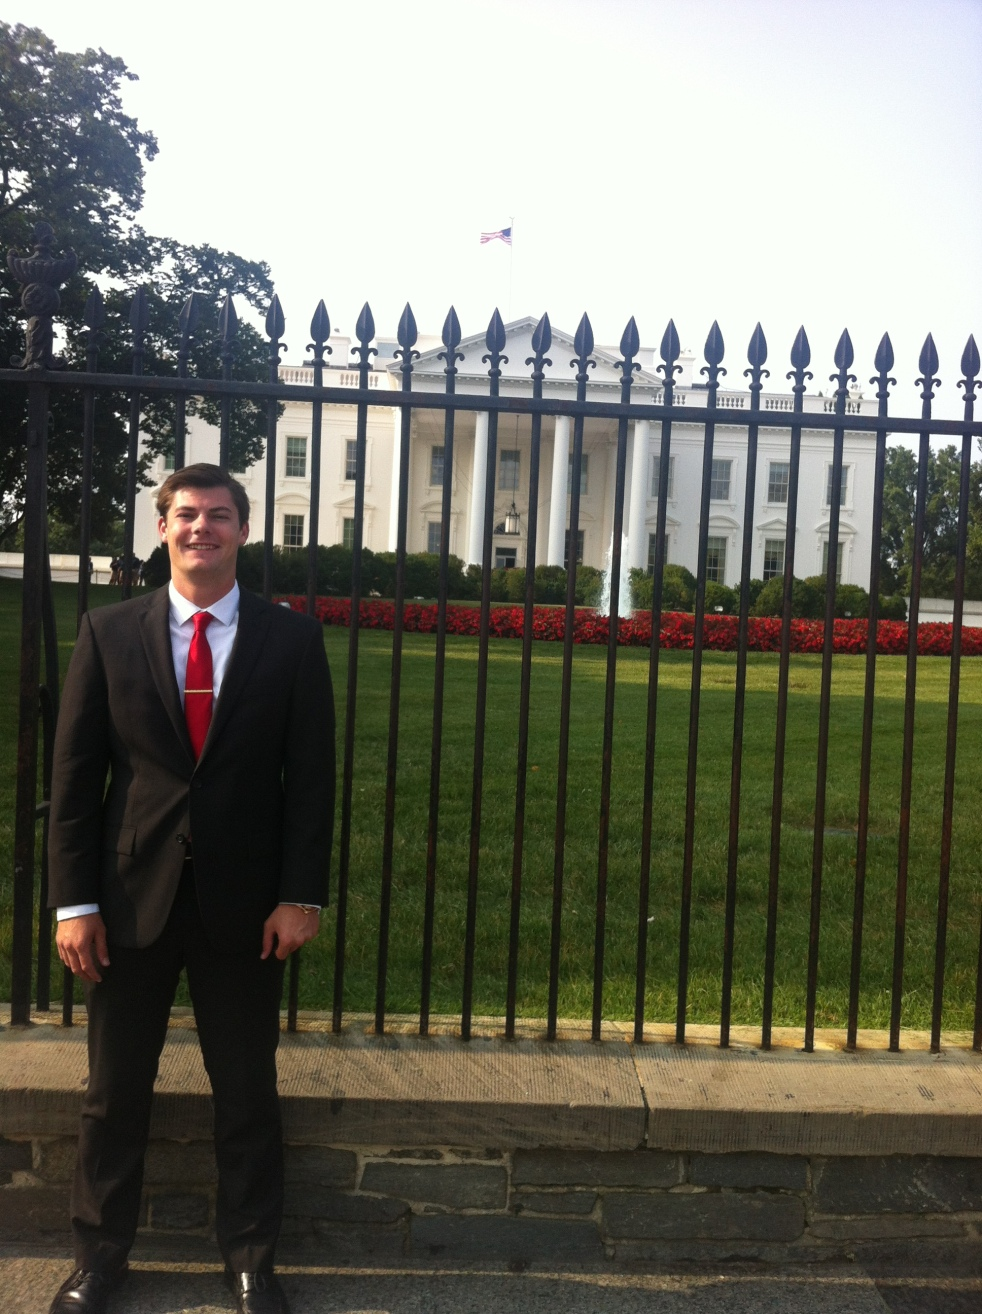 Nick Grimes in front of White House